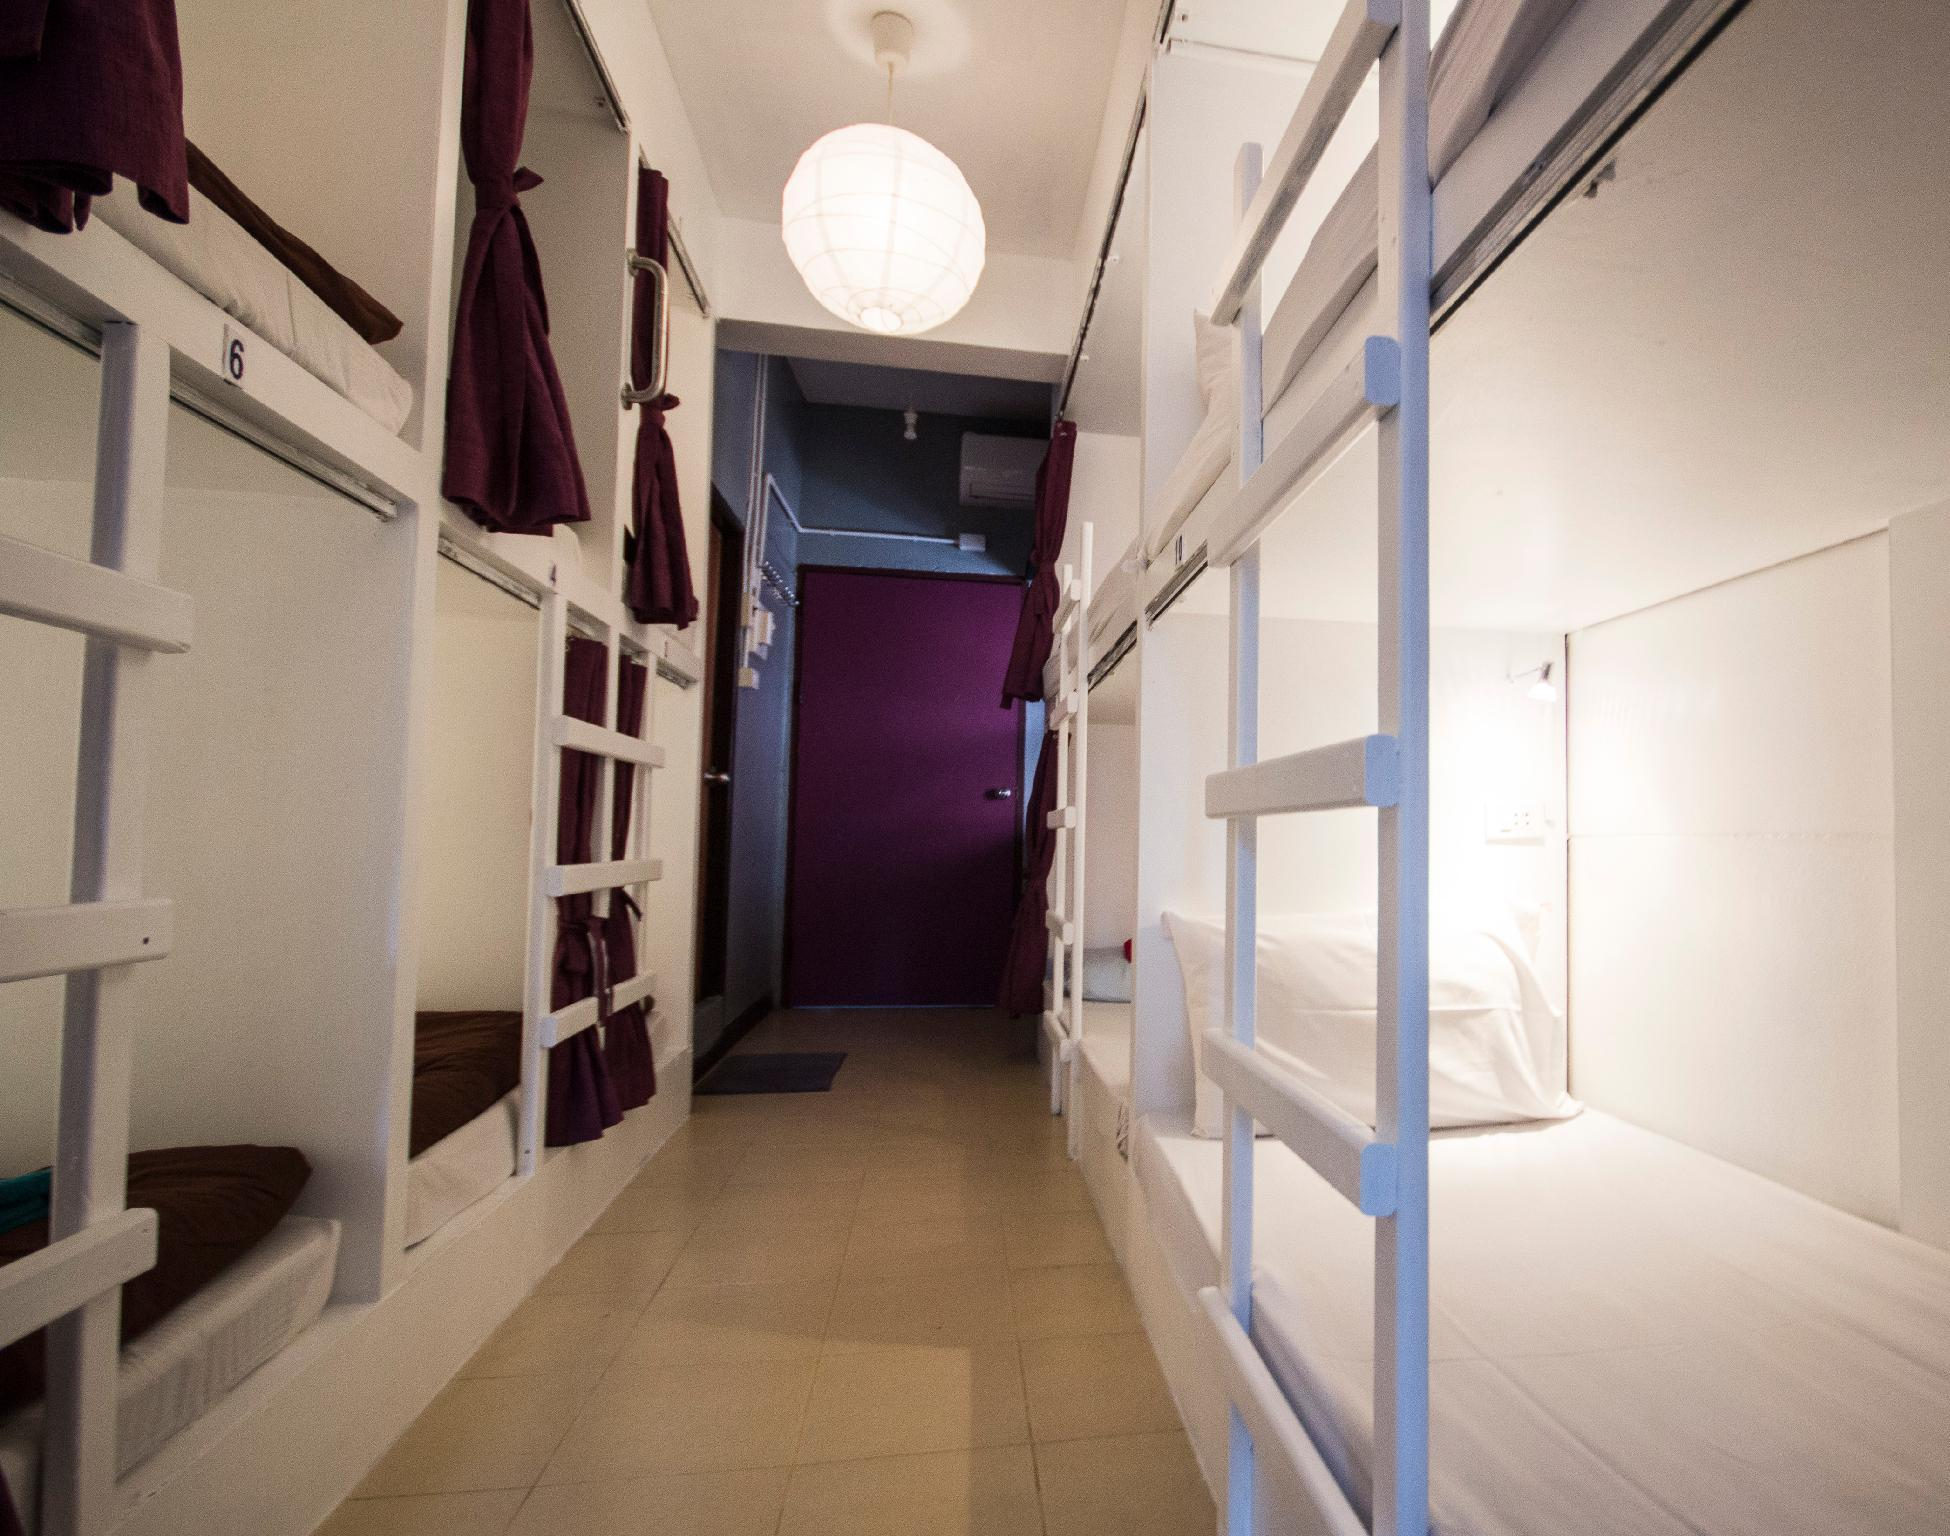 Lit simple dans un dortoir - 12 lits (1 Bed in 12-Bed Dormitory)